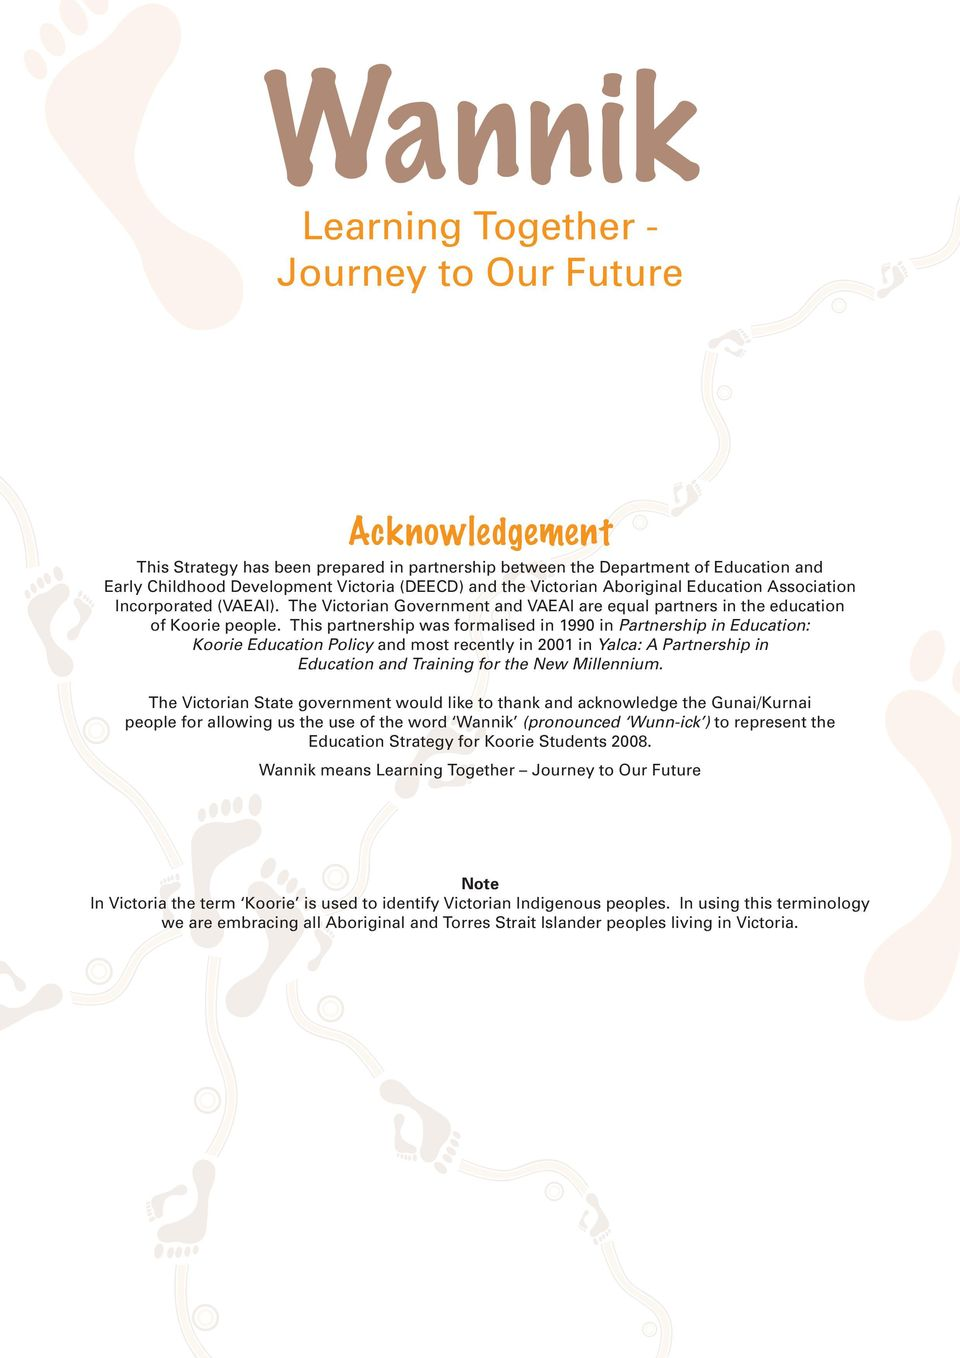 This partnership was formalised in 1990 in Partnership in Education: Koorie Education Policy and most recently in 2001 in Yalca: A Partnership in Education and Training for the New Millennium.